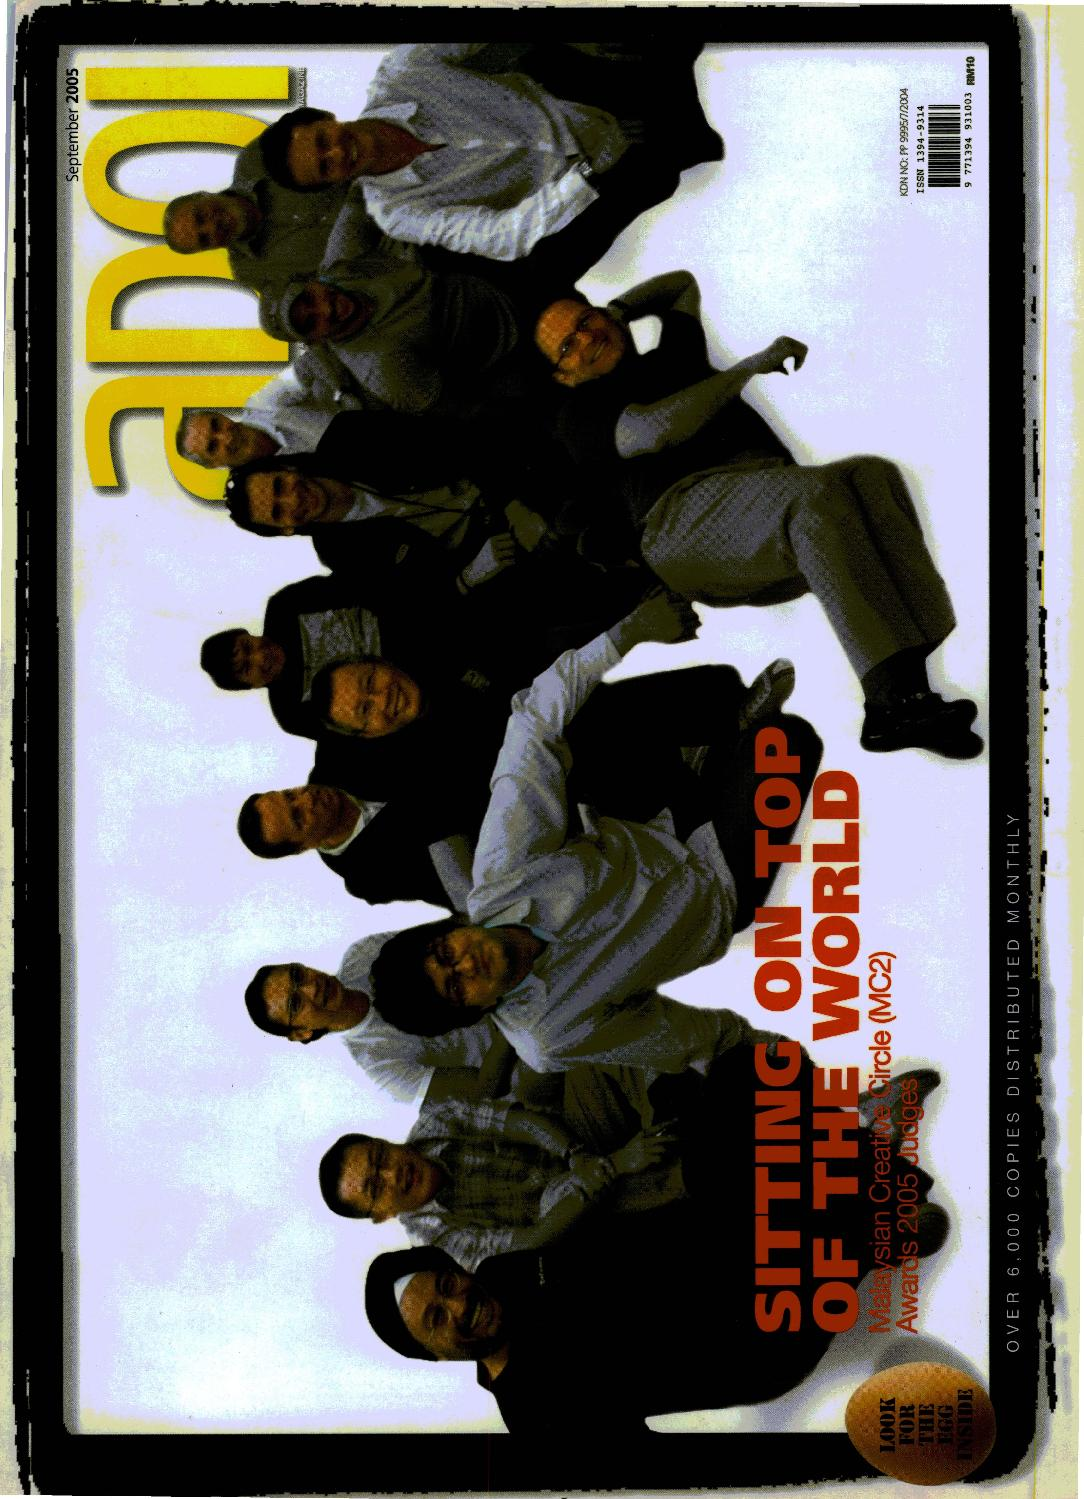 Adoi Malaysia 2005 September Issue by Sledgehammer